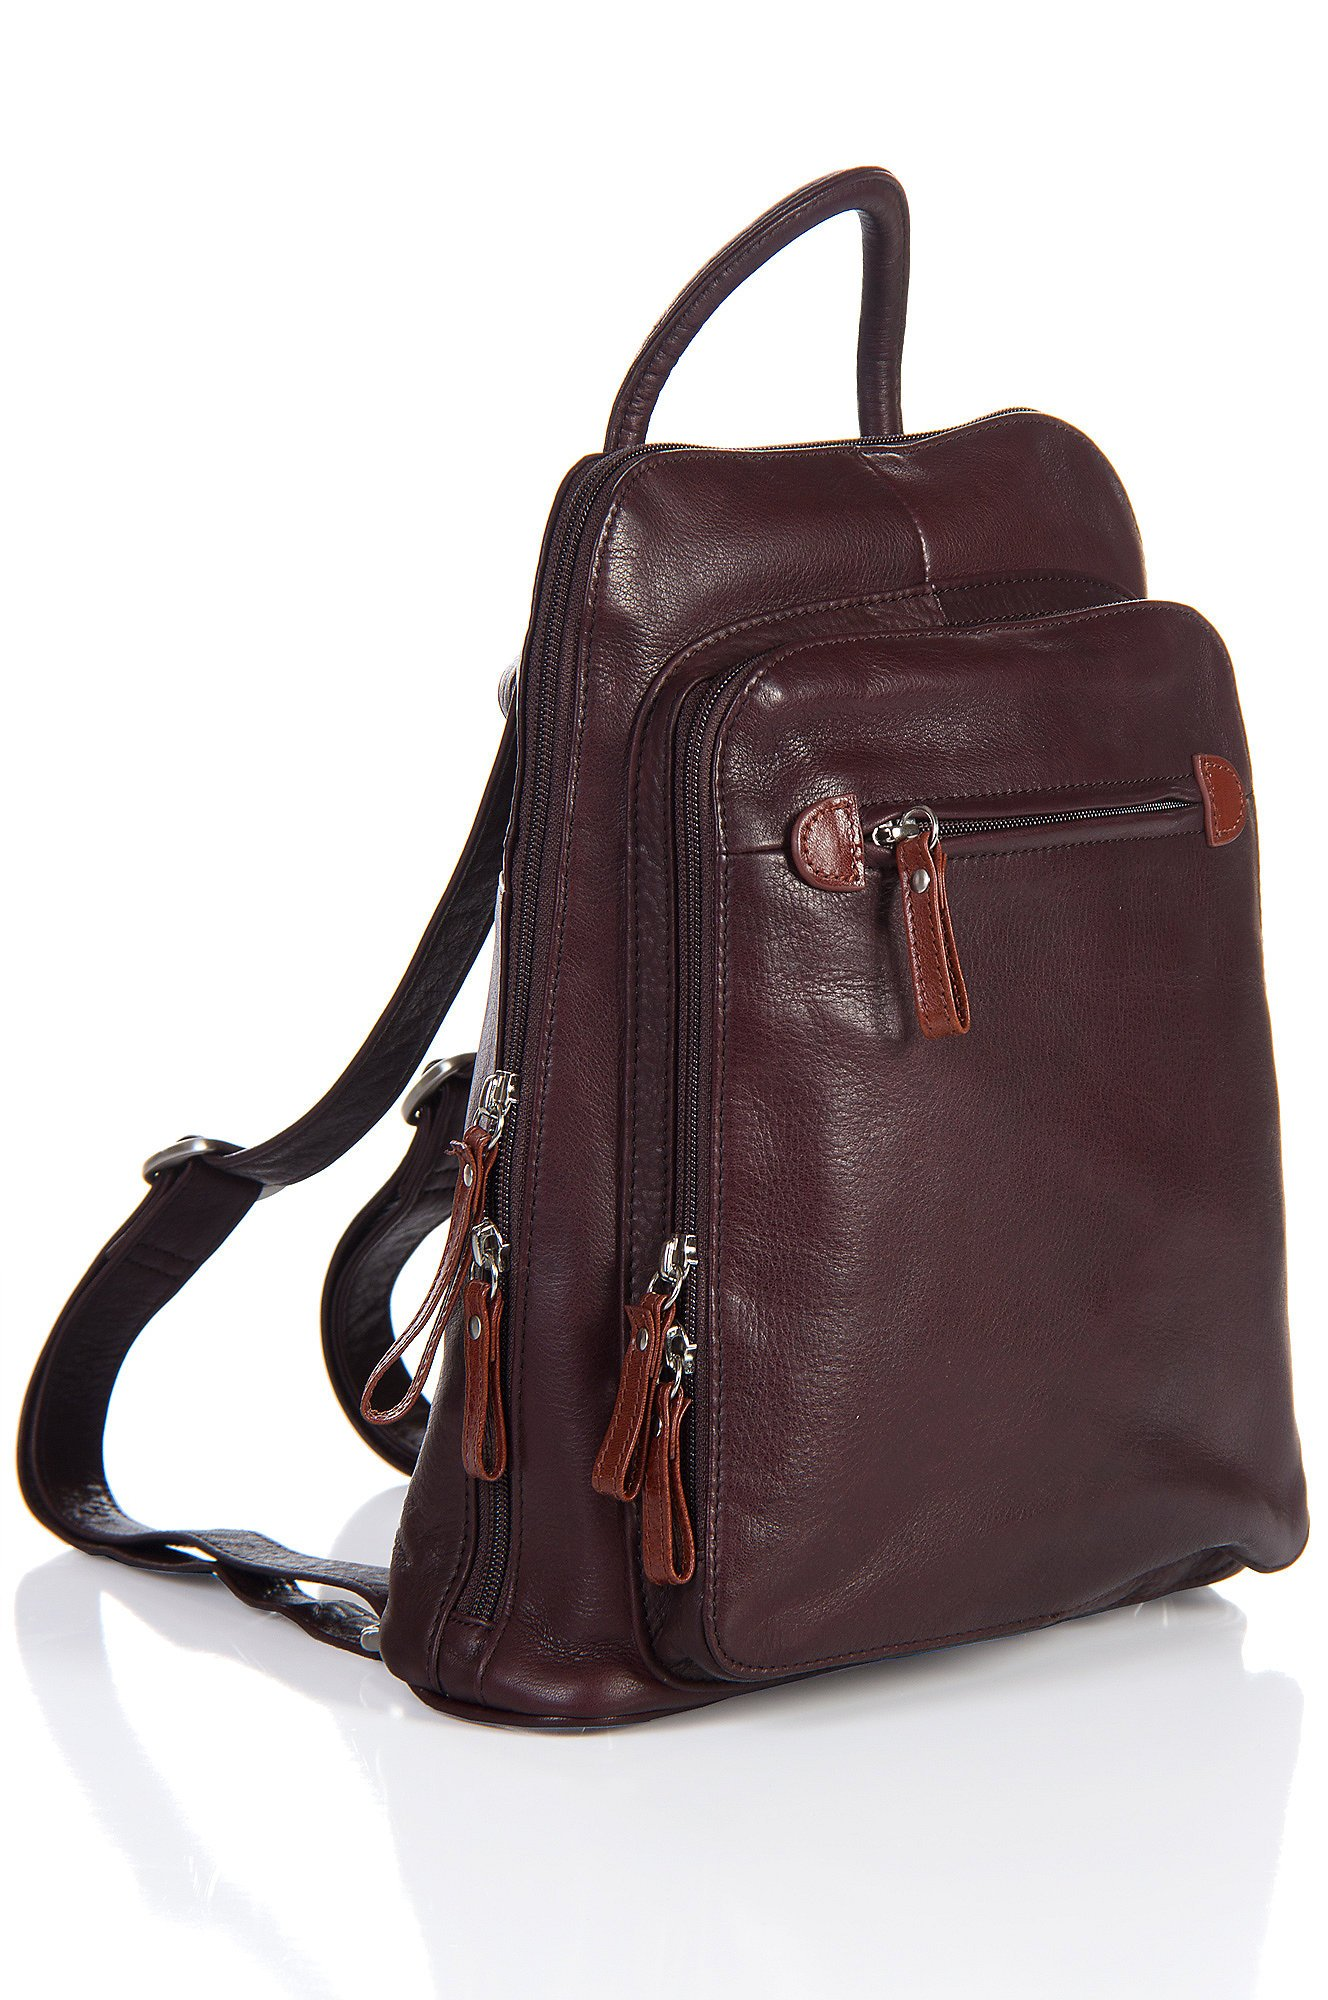 Macy Leather Backpack Handbag, RAISIN/WHISKEY, Size 1 Size by Overland Sheepskin Co